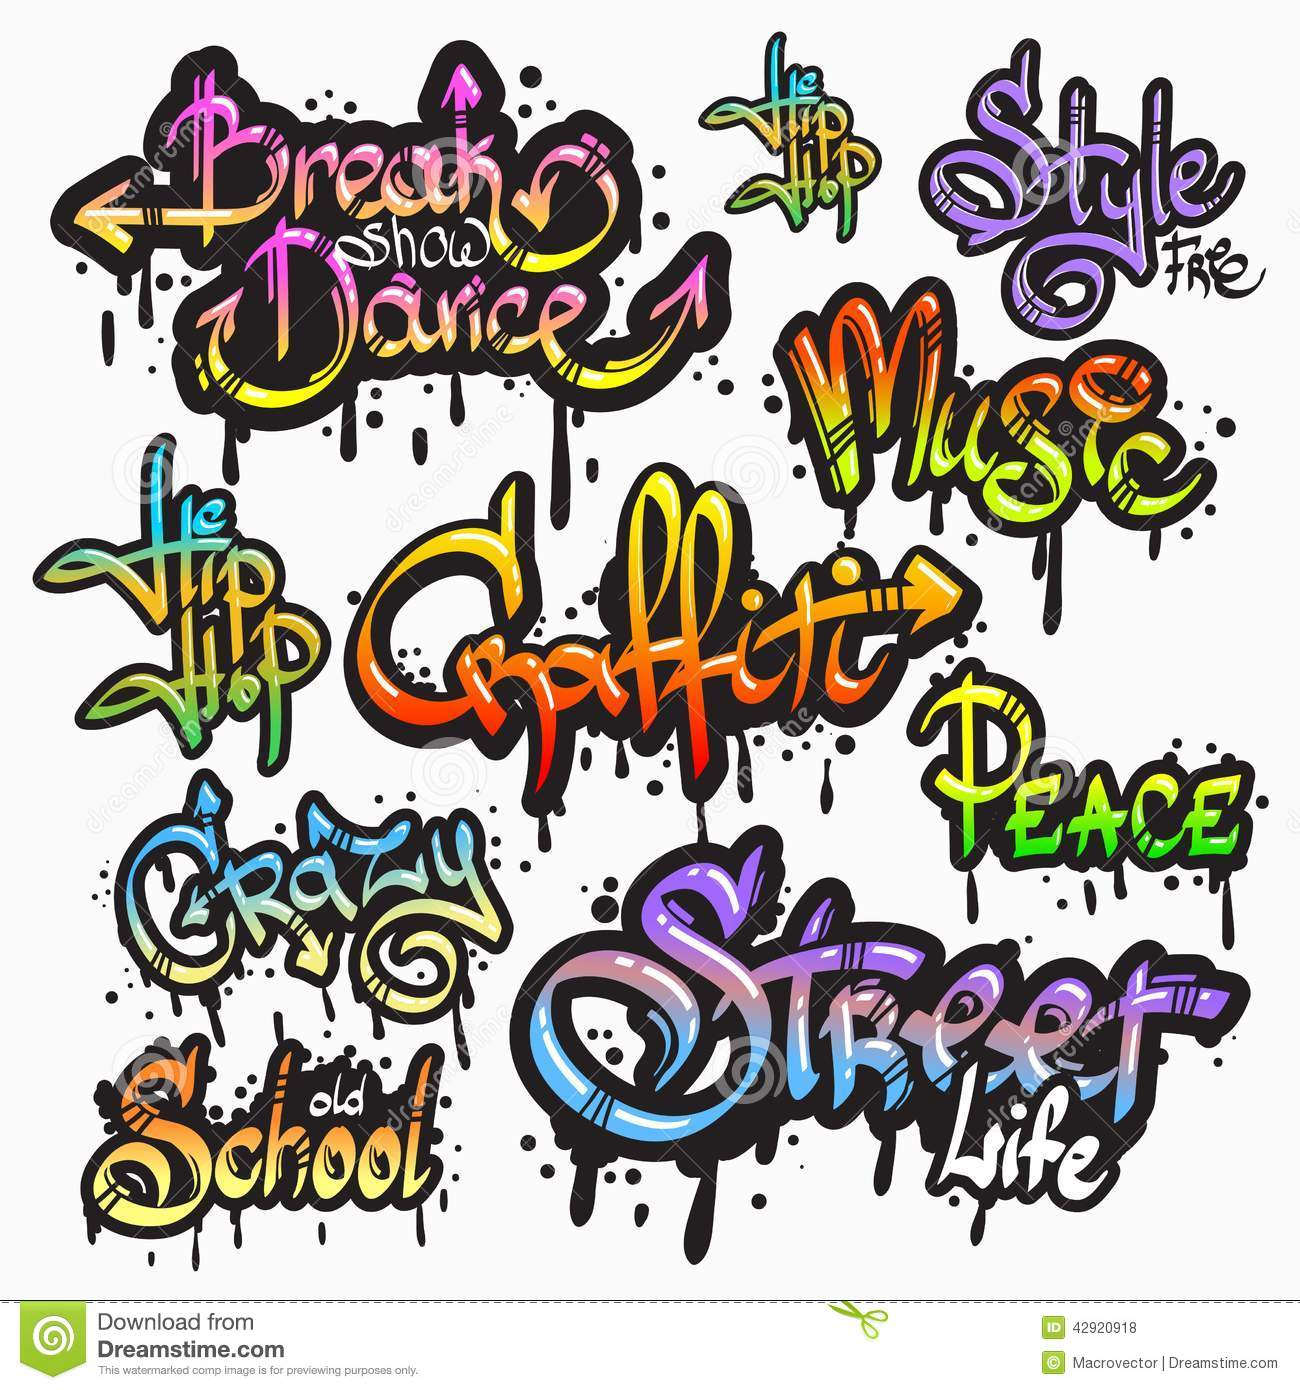 Expressive collection of graffiti urban youth art individual words digital spray paint creator grunge isolated vector illustration